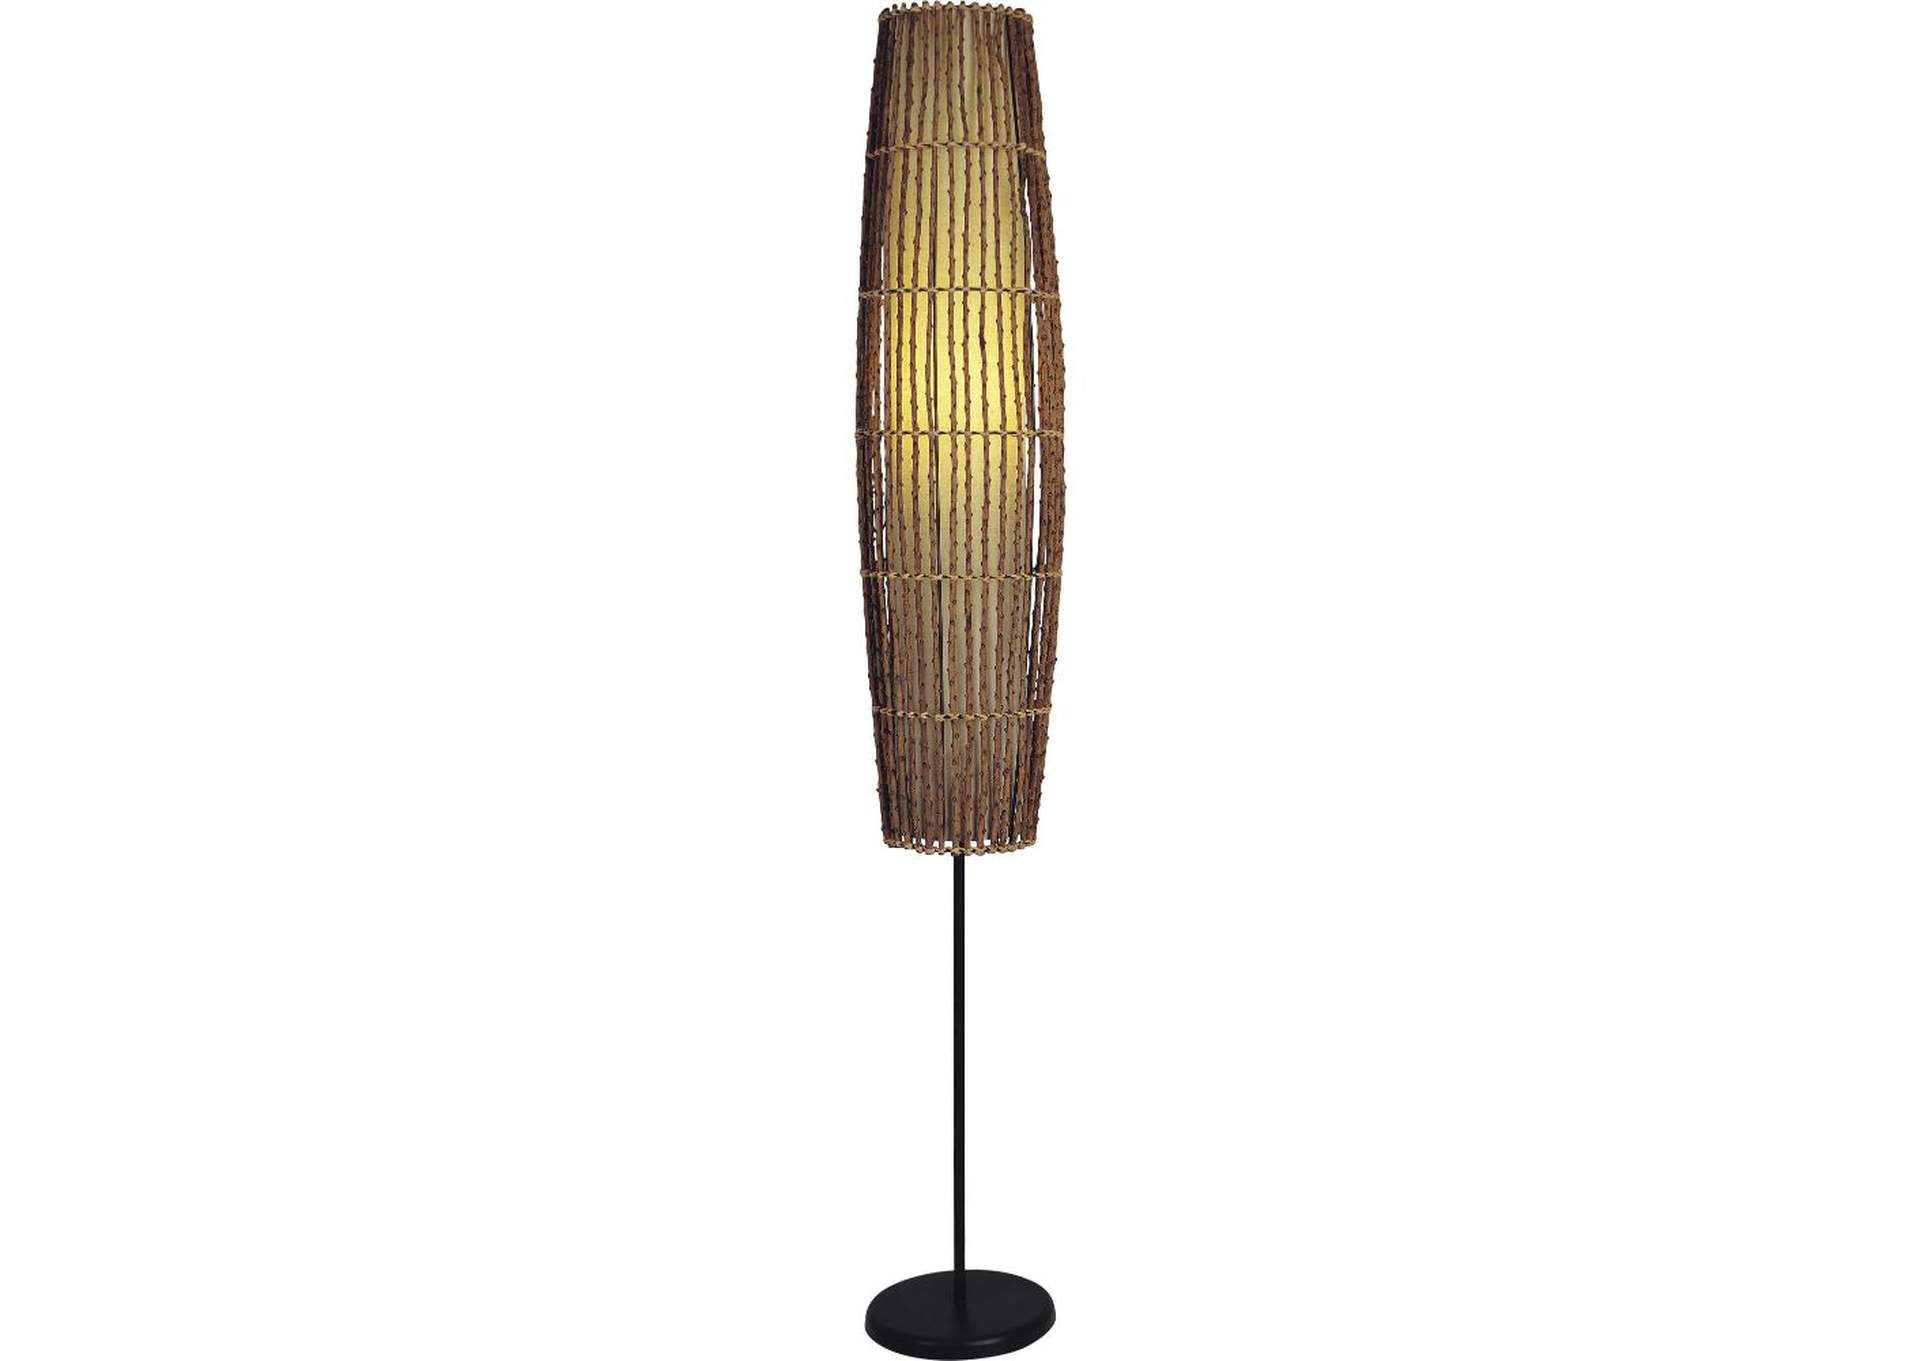 Bamboo Floor Lamp,Acme